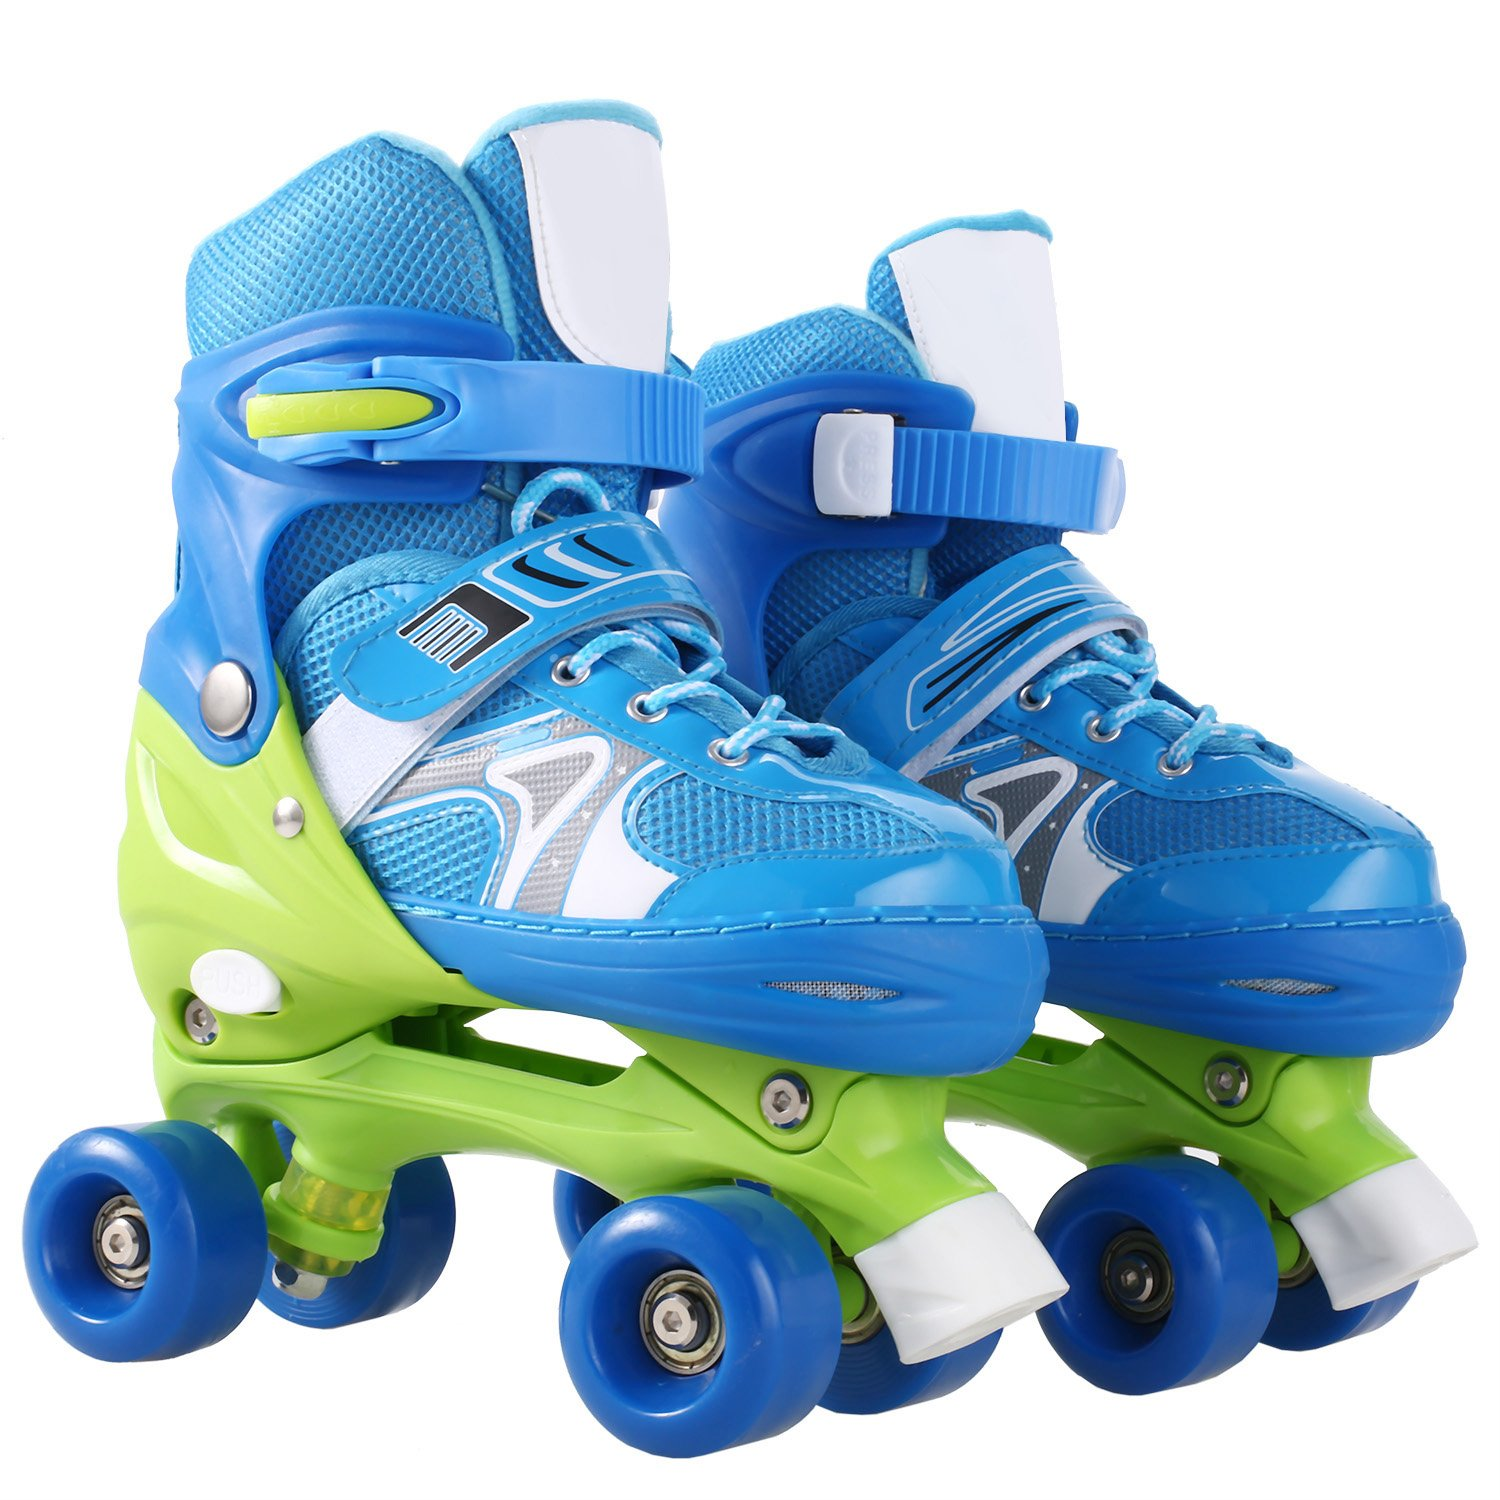 Aceshin Adjustable Artistic Outdoor Toddler Quad Roller Skates for Kids [US Stock] (Blue2, S)